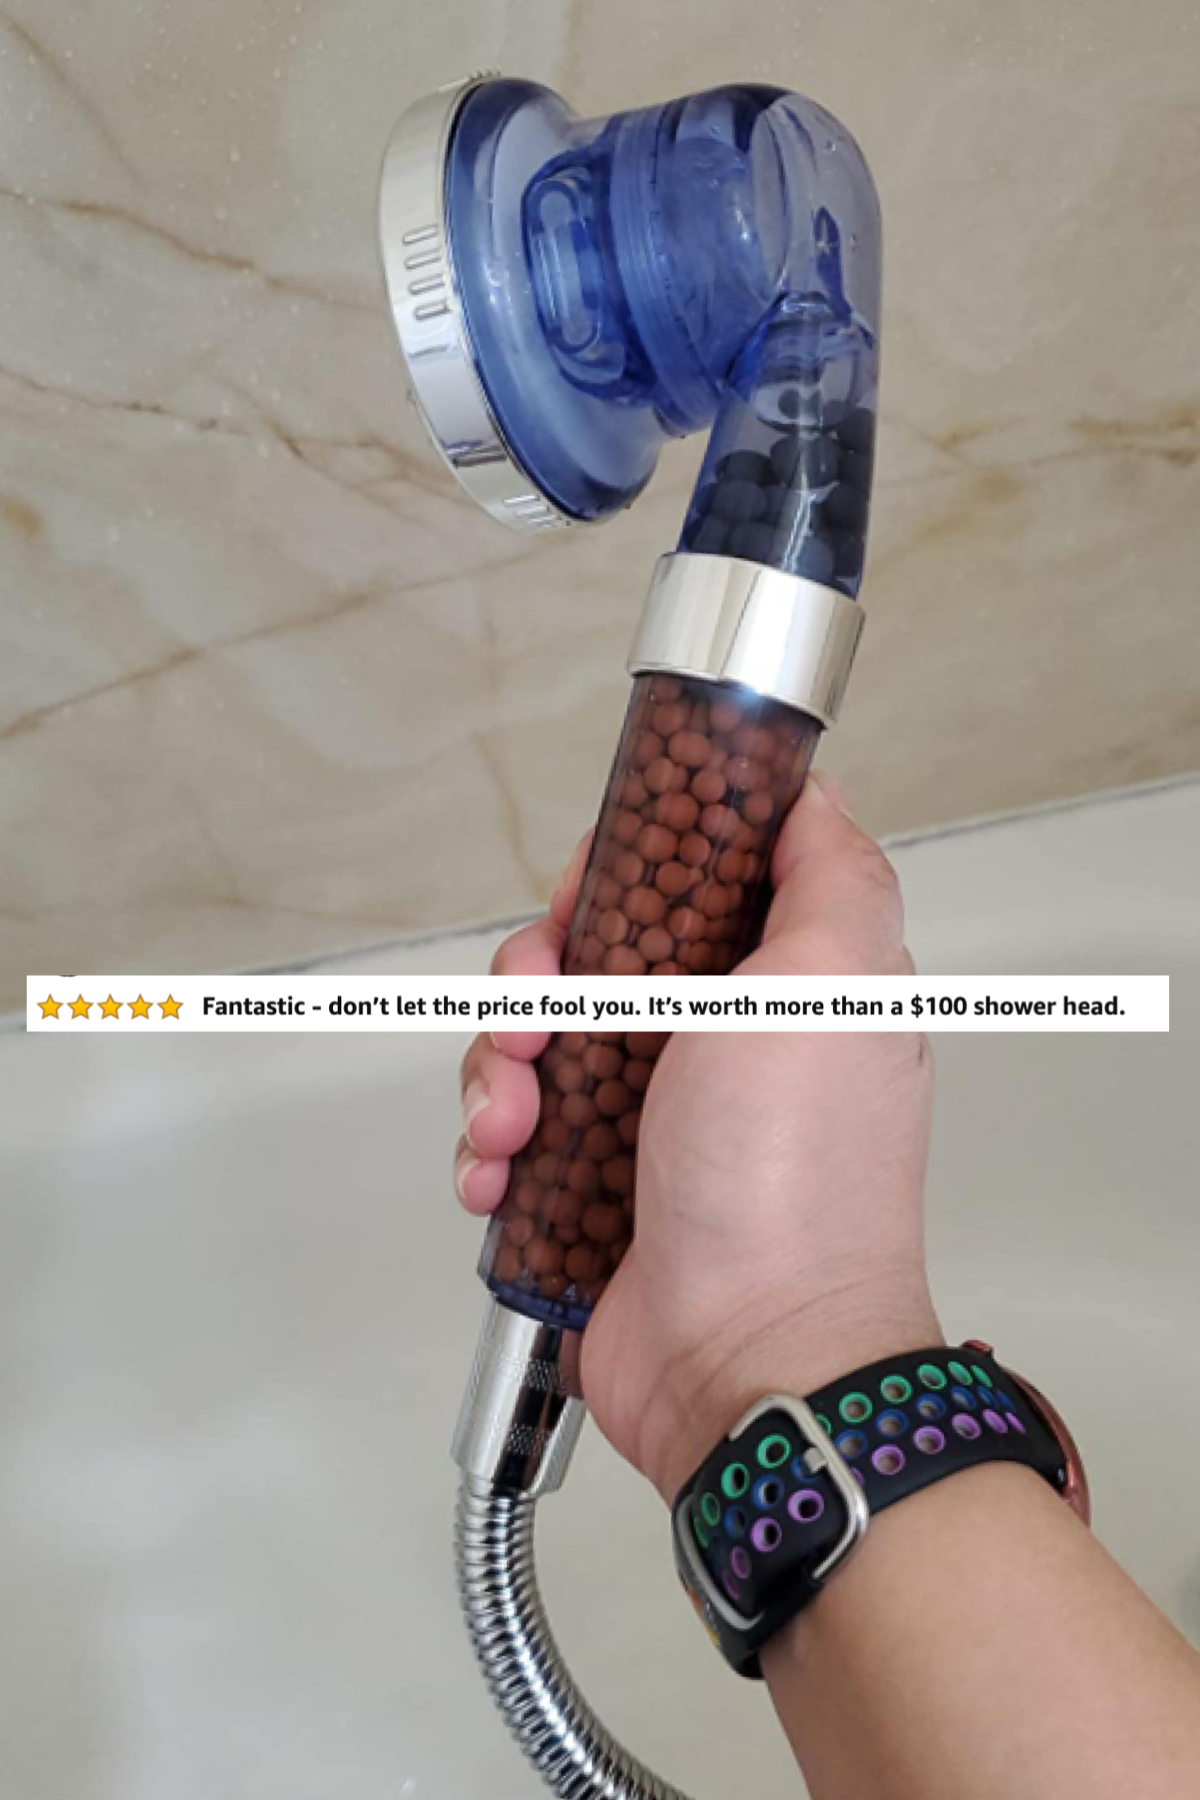 reviewer holding shower head with a review image on top saying it's worth more money